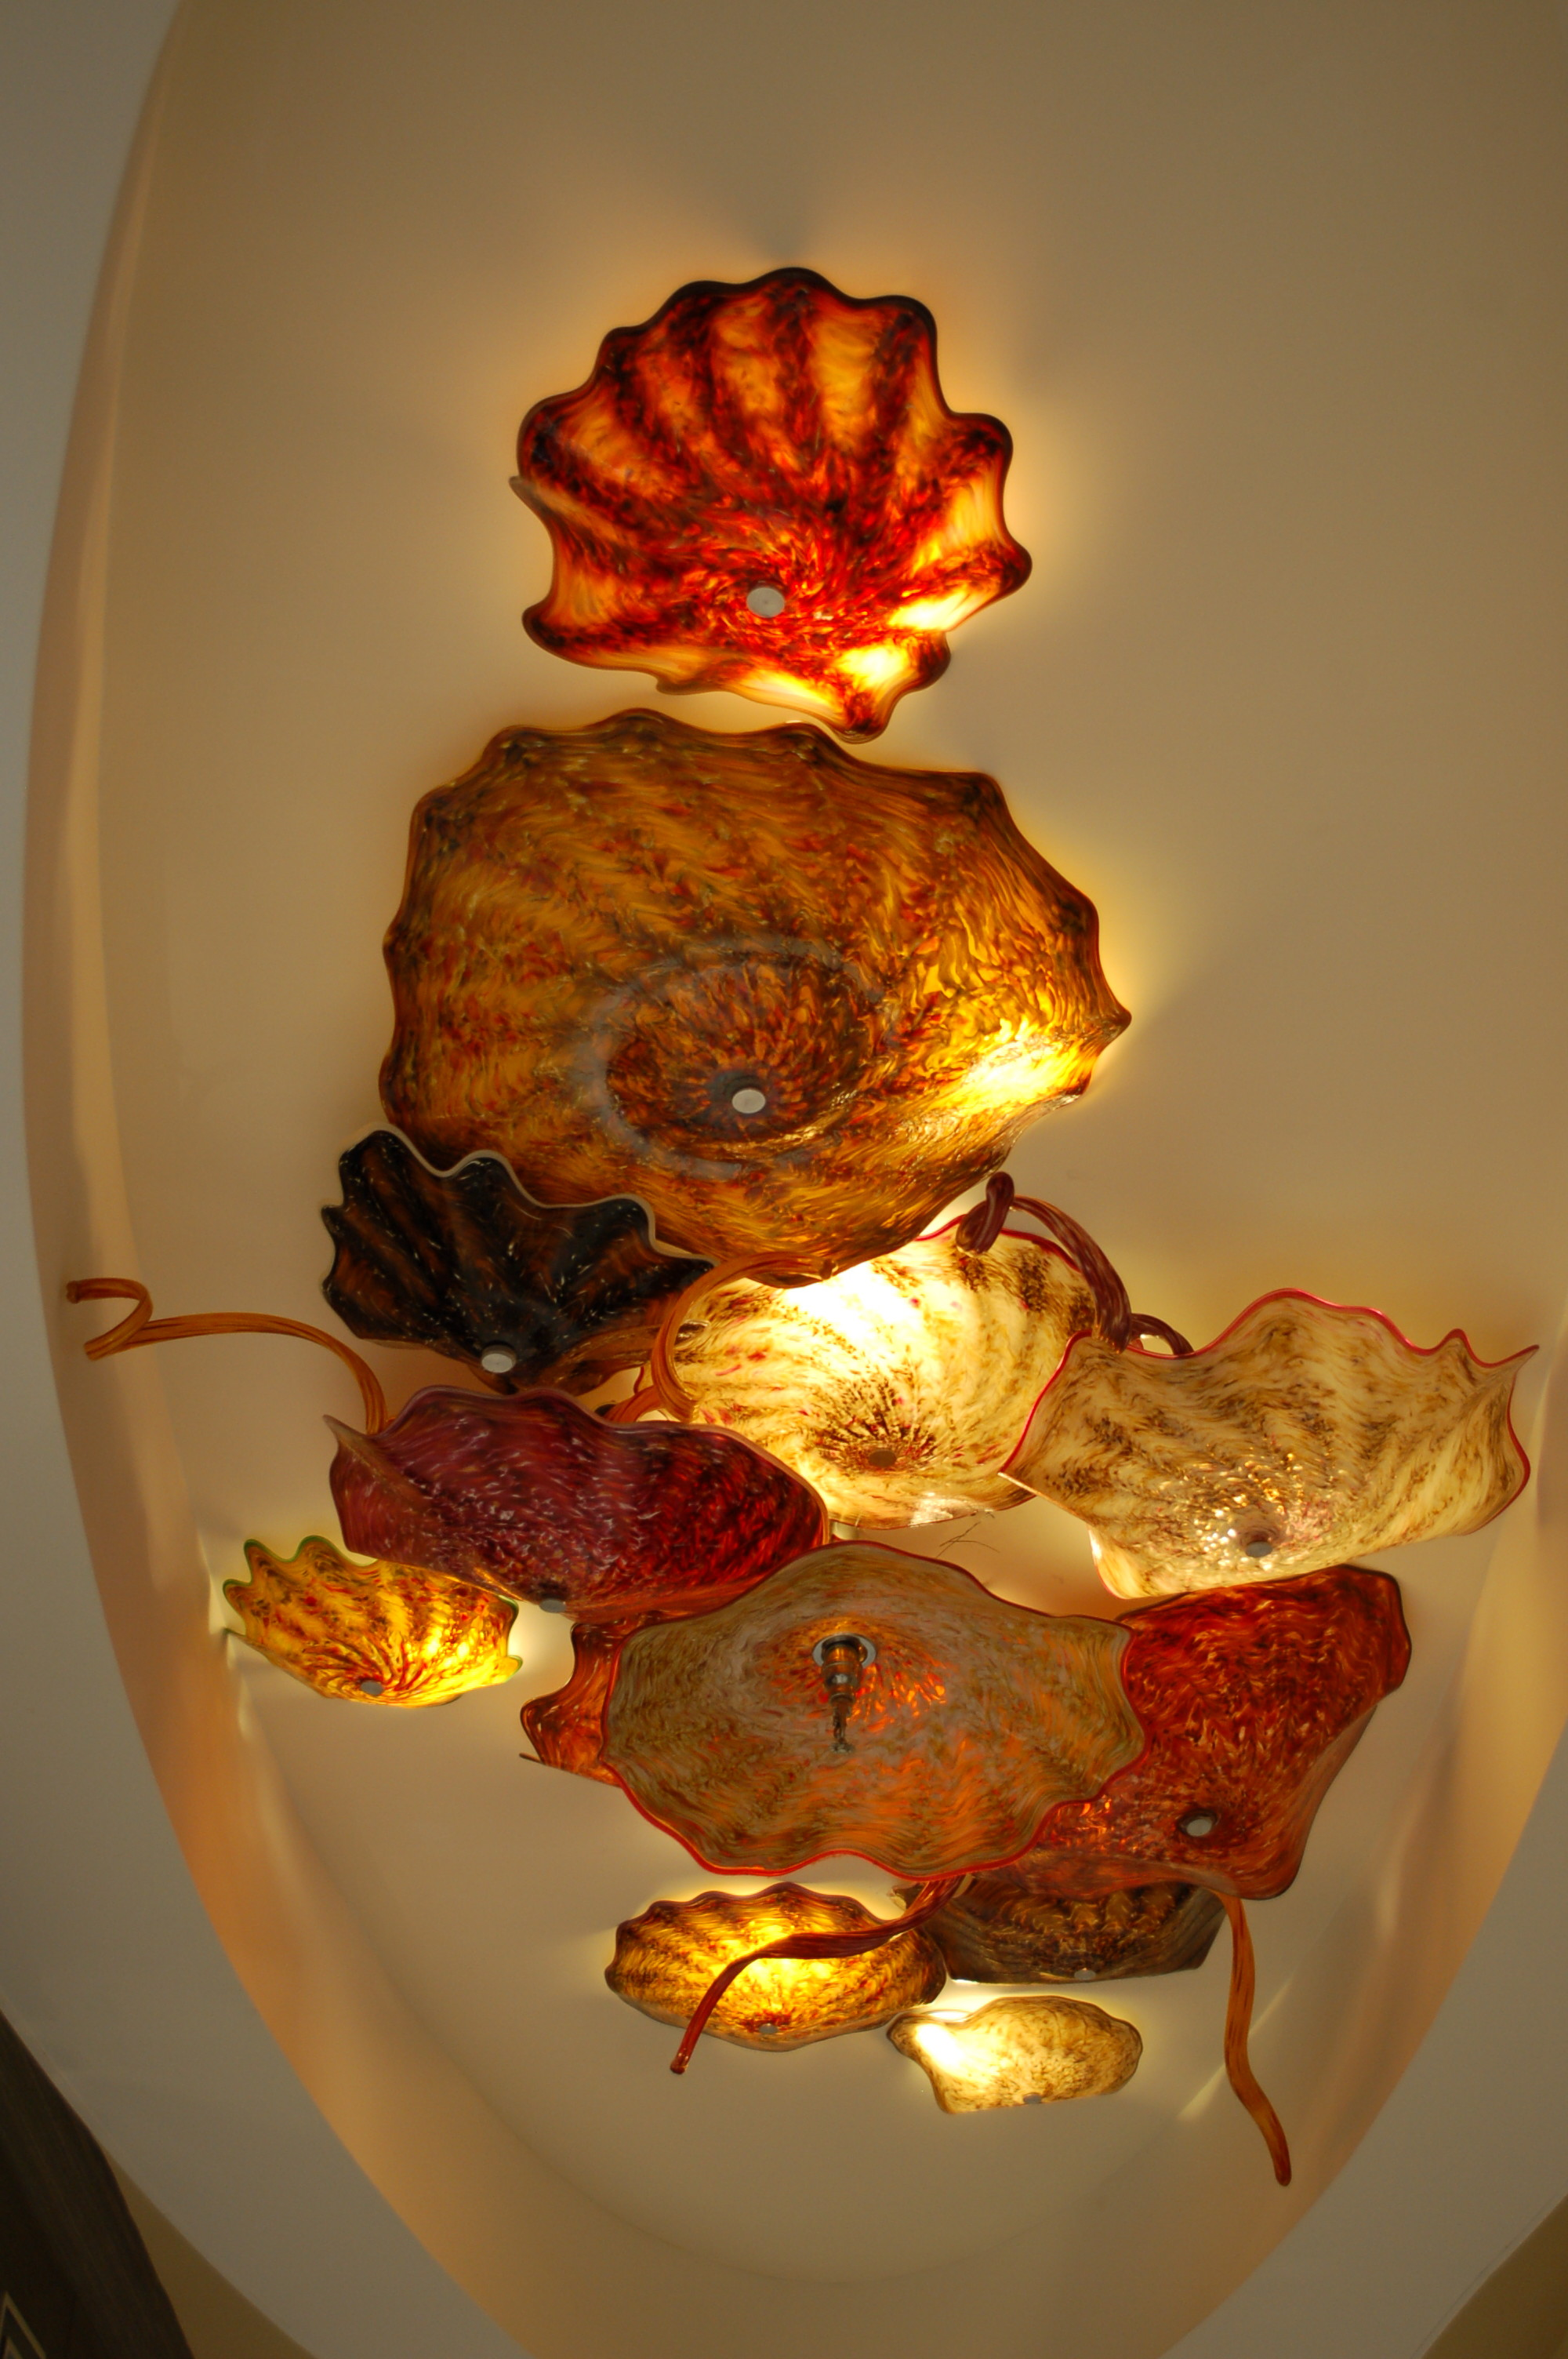 The Lighting Fixtures Were All Glass, These Reminded Me Of Jellyfish.